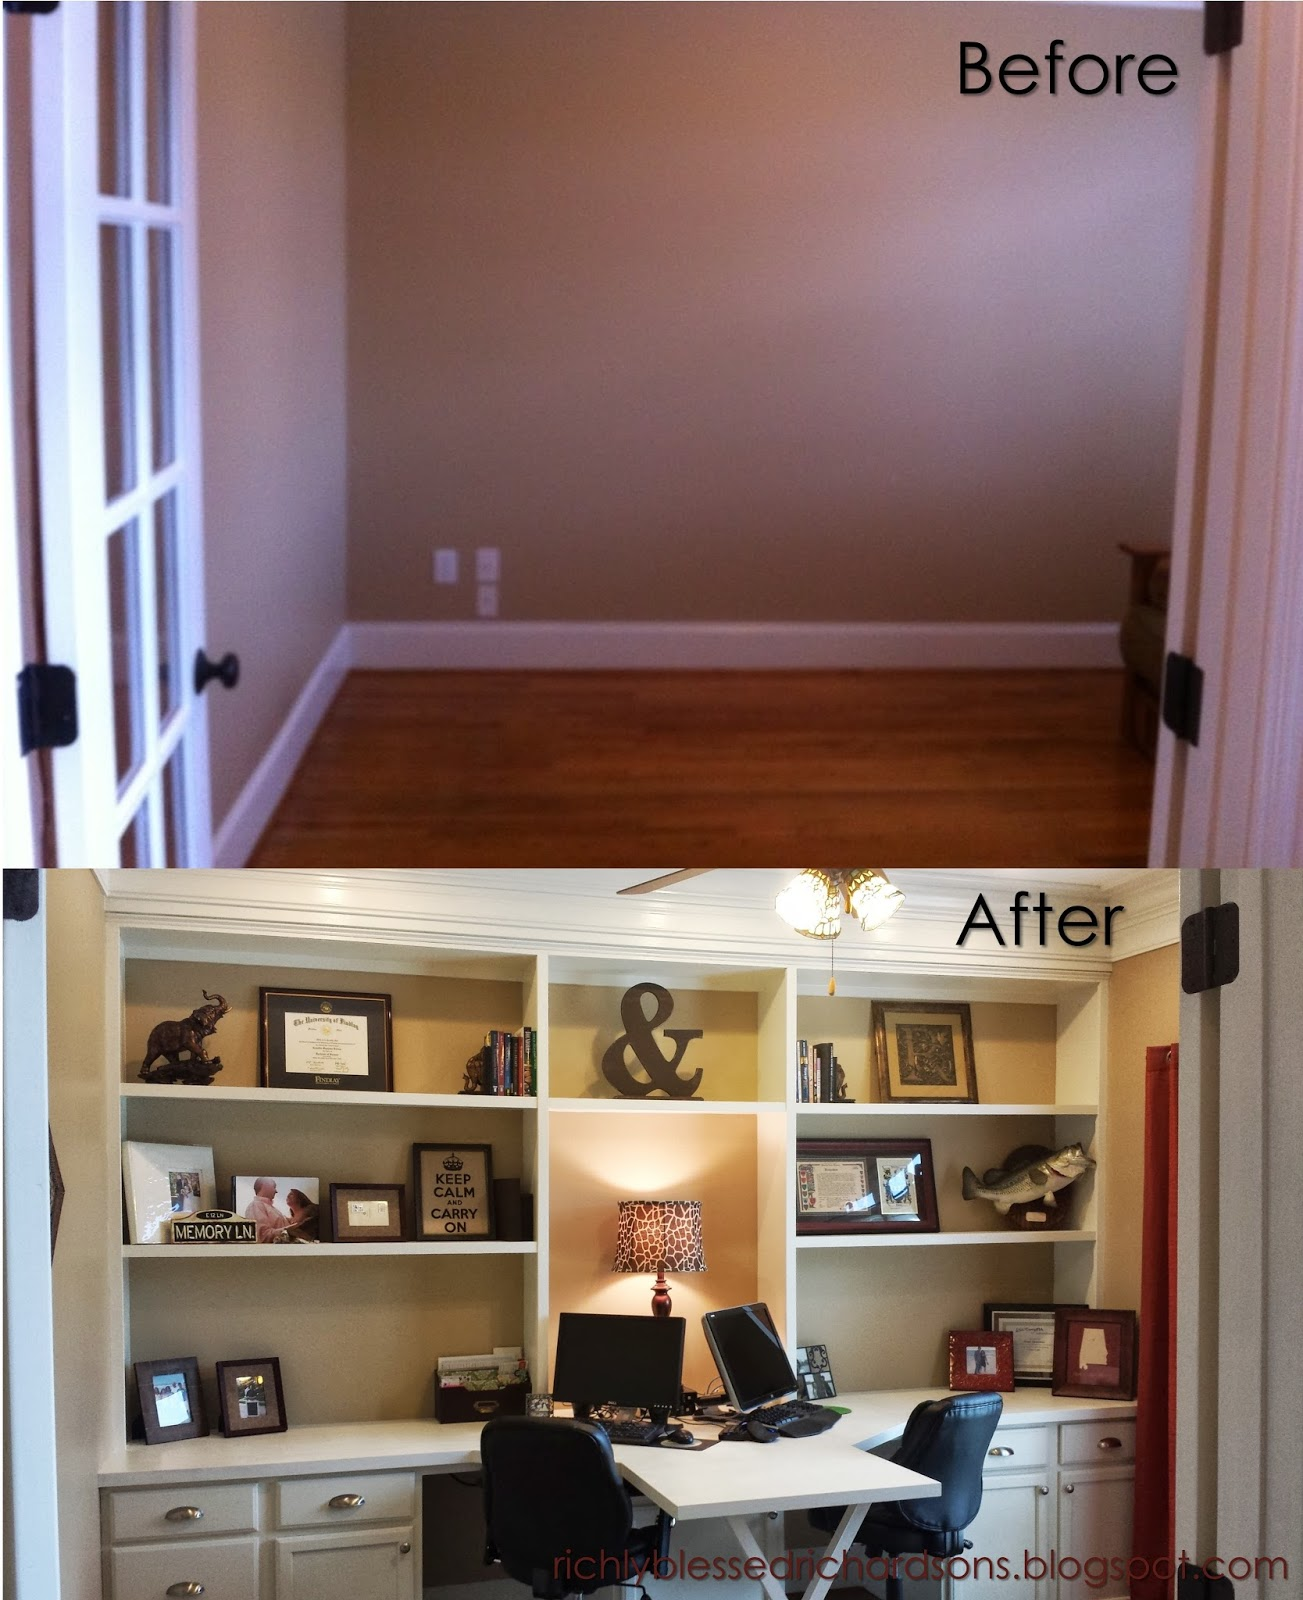 Richly blessed our home office before and after for Home office in kitchen ideas